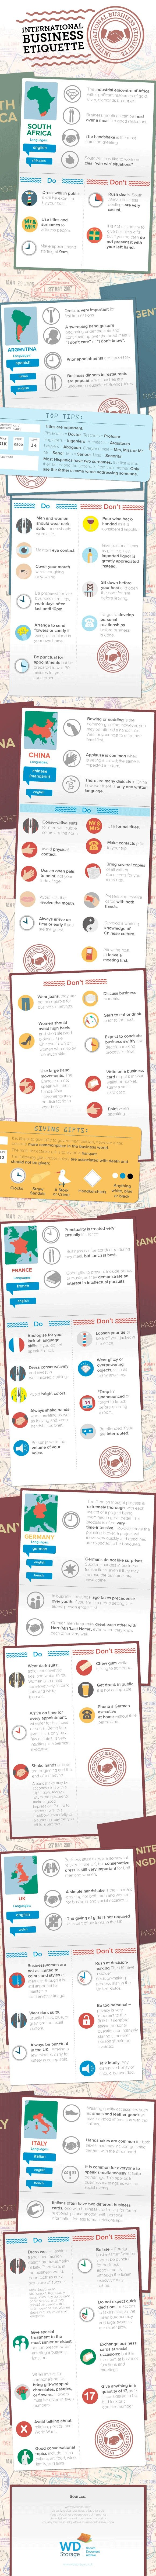 7 International business etiquette rules including French business etiquette